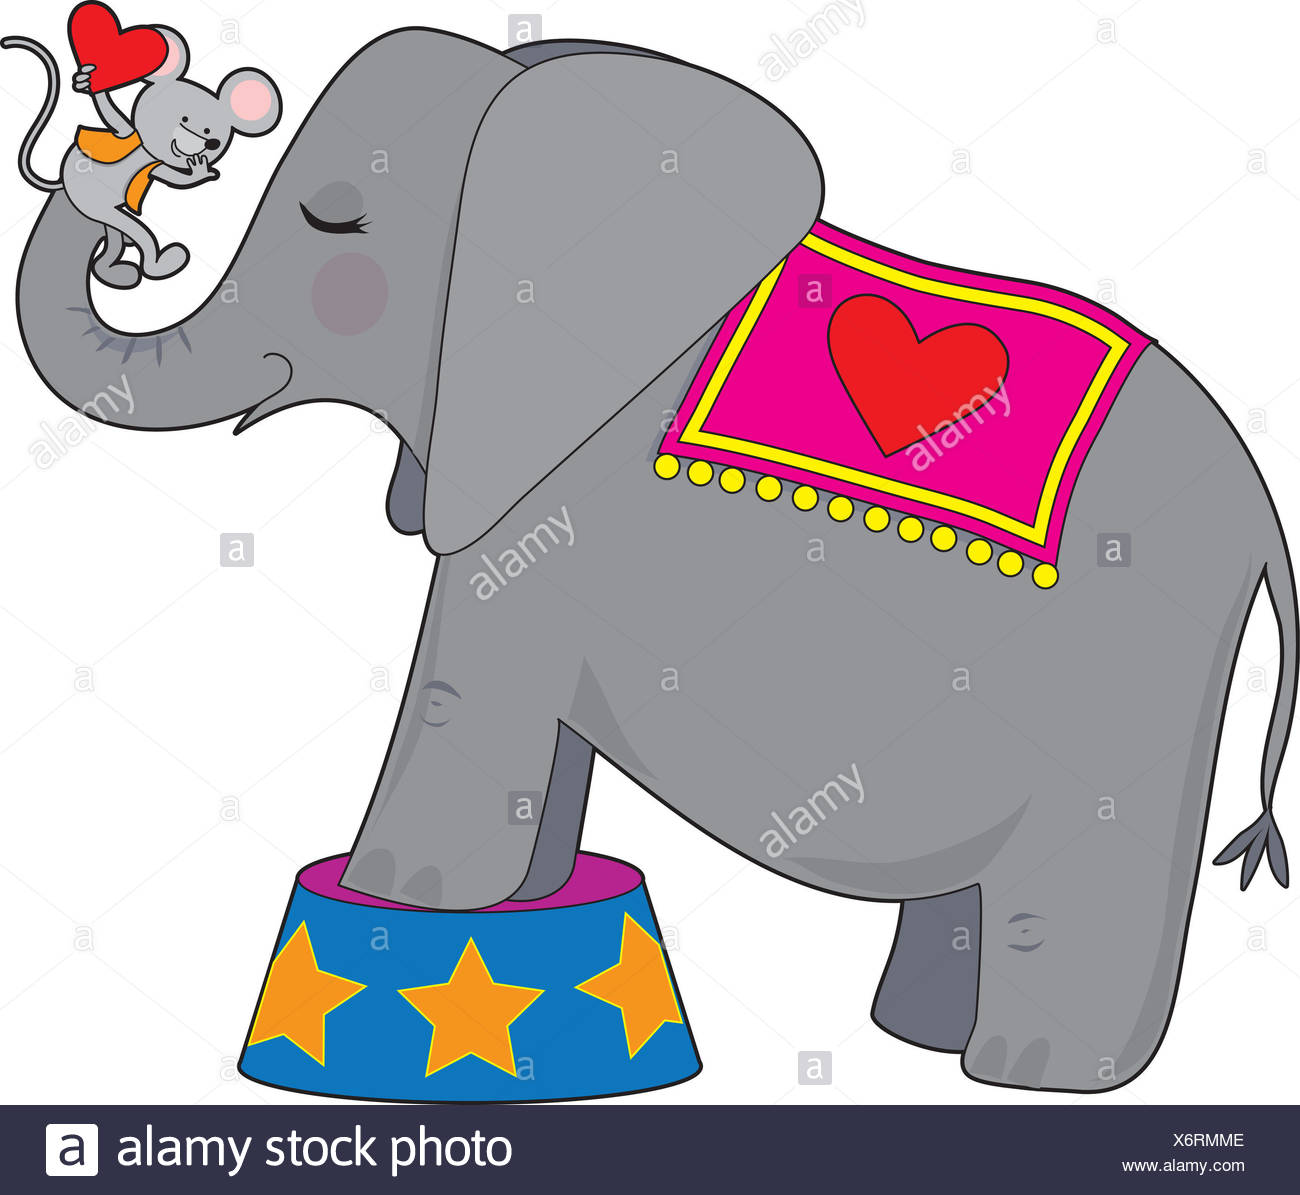 elephant, mouse, circus, hearts, stars, asterisks, valentine, trunk, big, - Stock Image